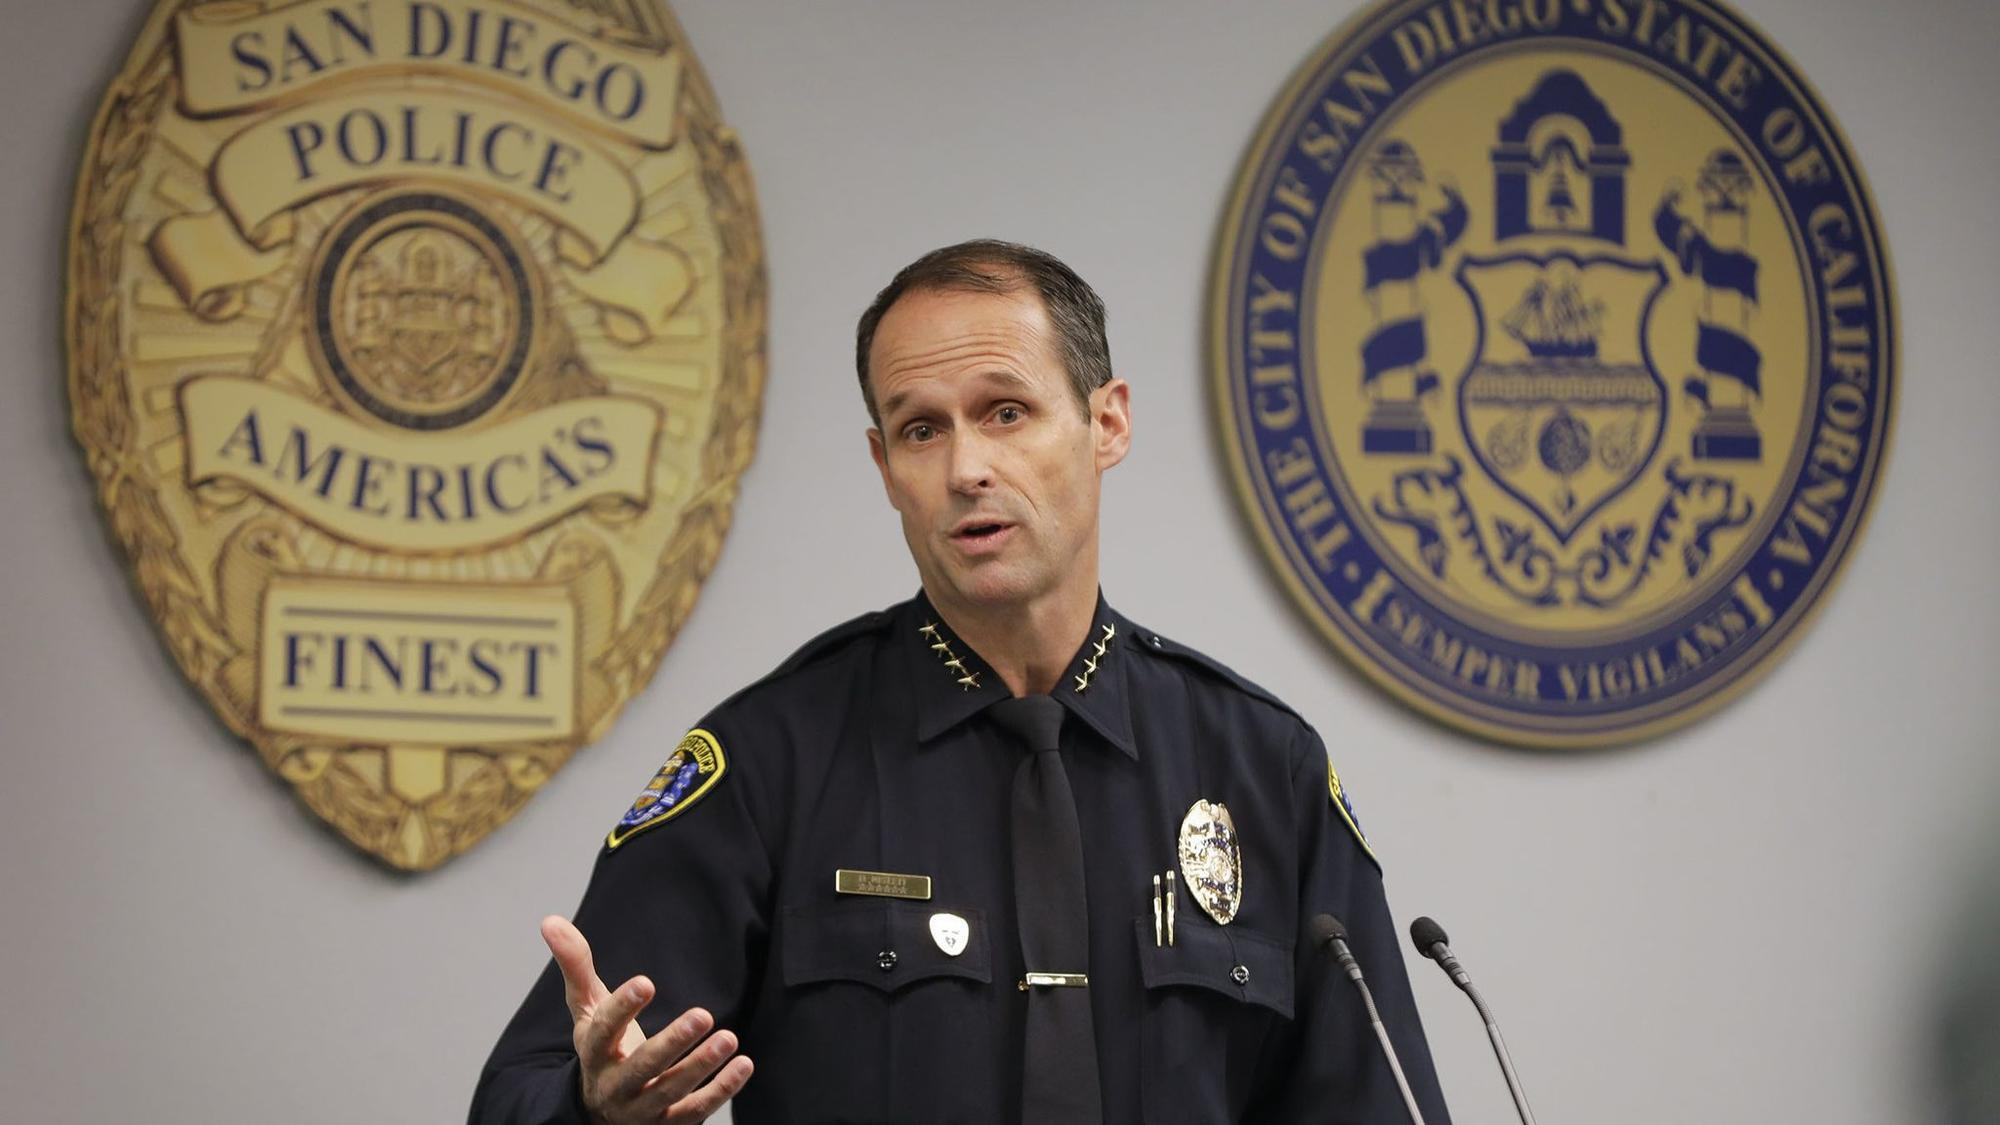 SAN DIEGO, CA: MARCH 16, 2018: San Diego Police Chief David Nisleit holds a press conference at pol